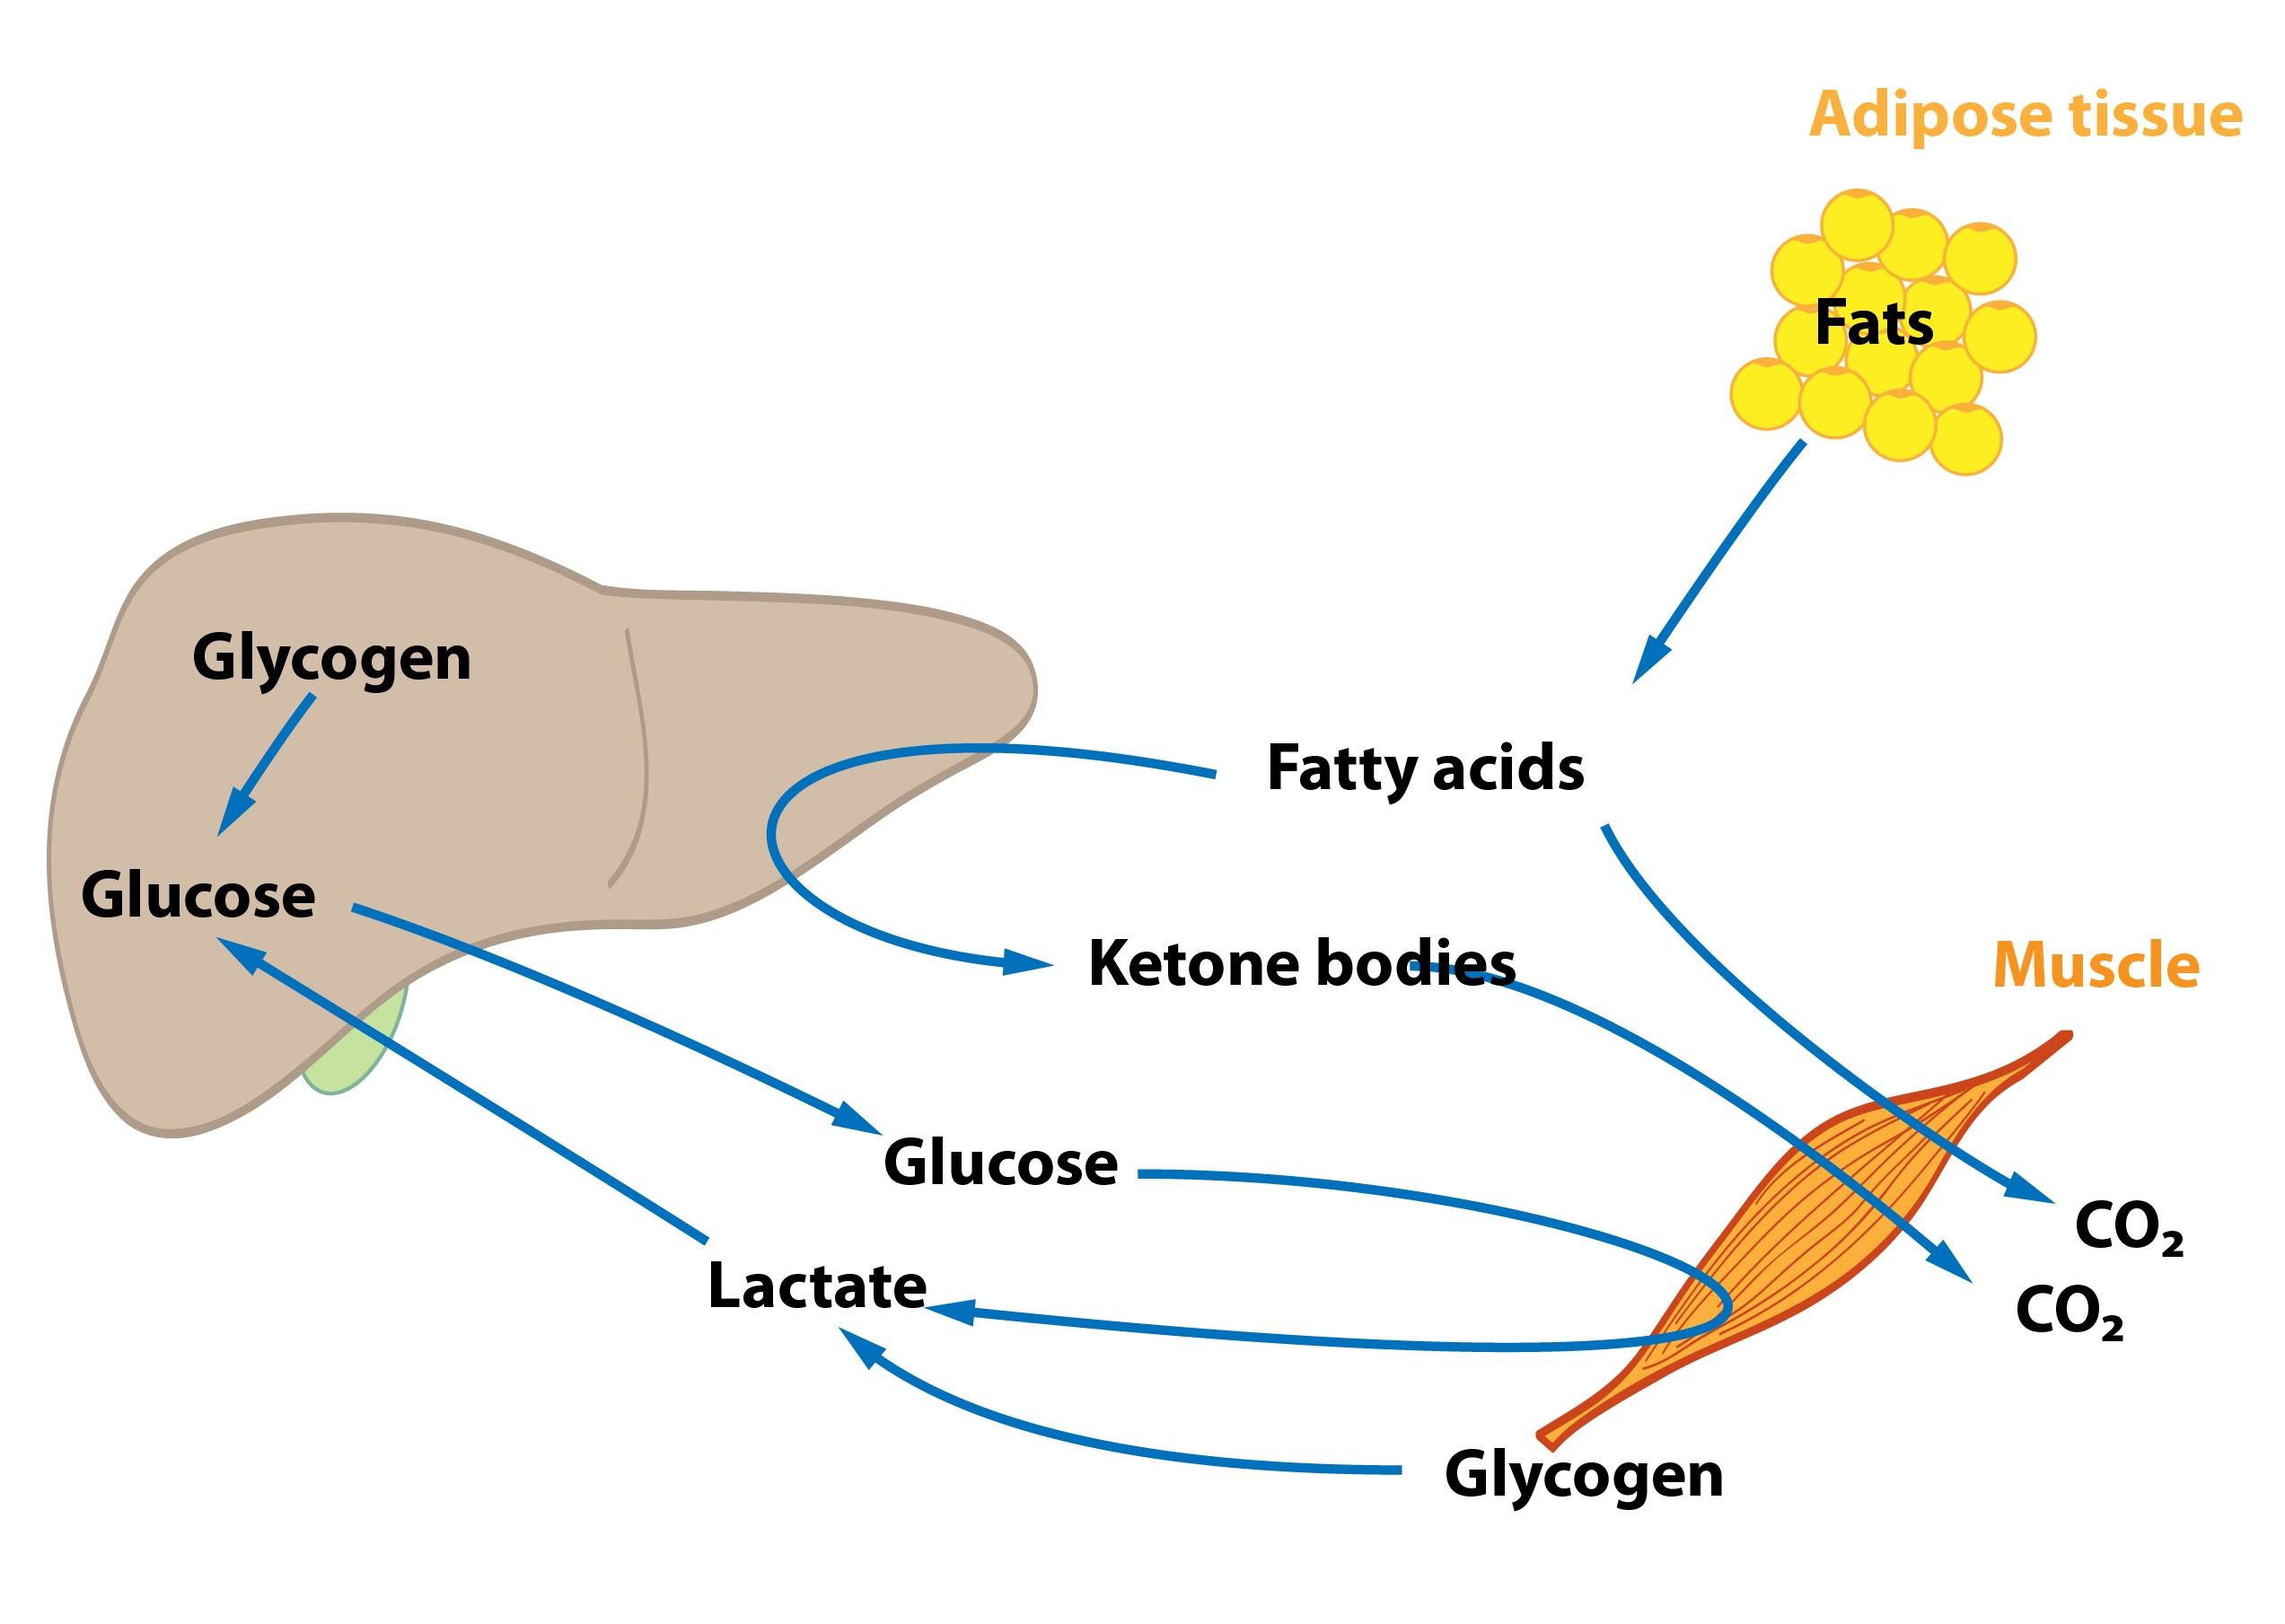 energy and metabolism Metabolism: metabolism, the sum of chemical reactions that take place in living cells, providing energy for life processes and the synthesis of cellular material.